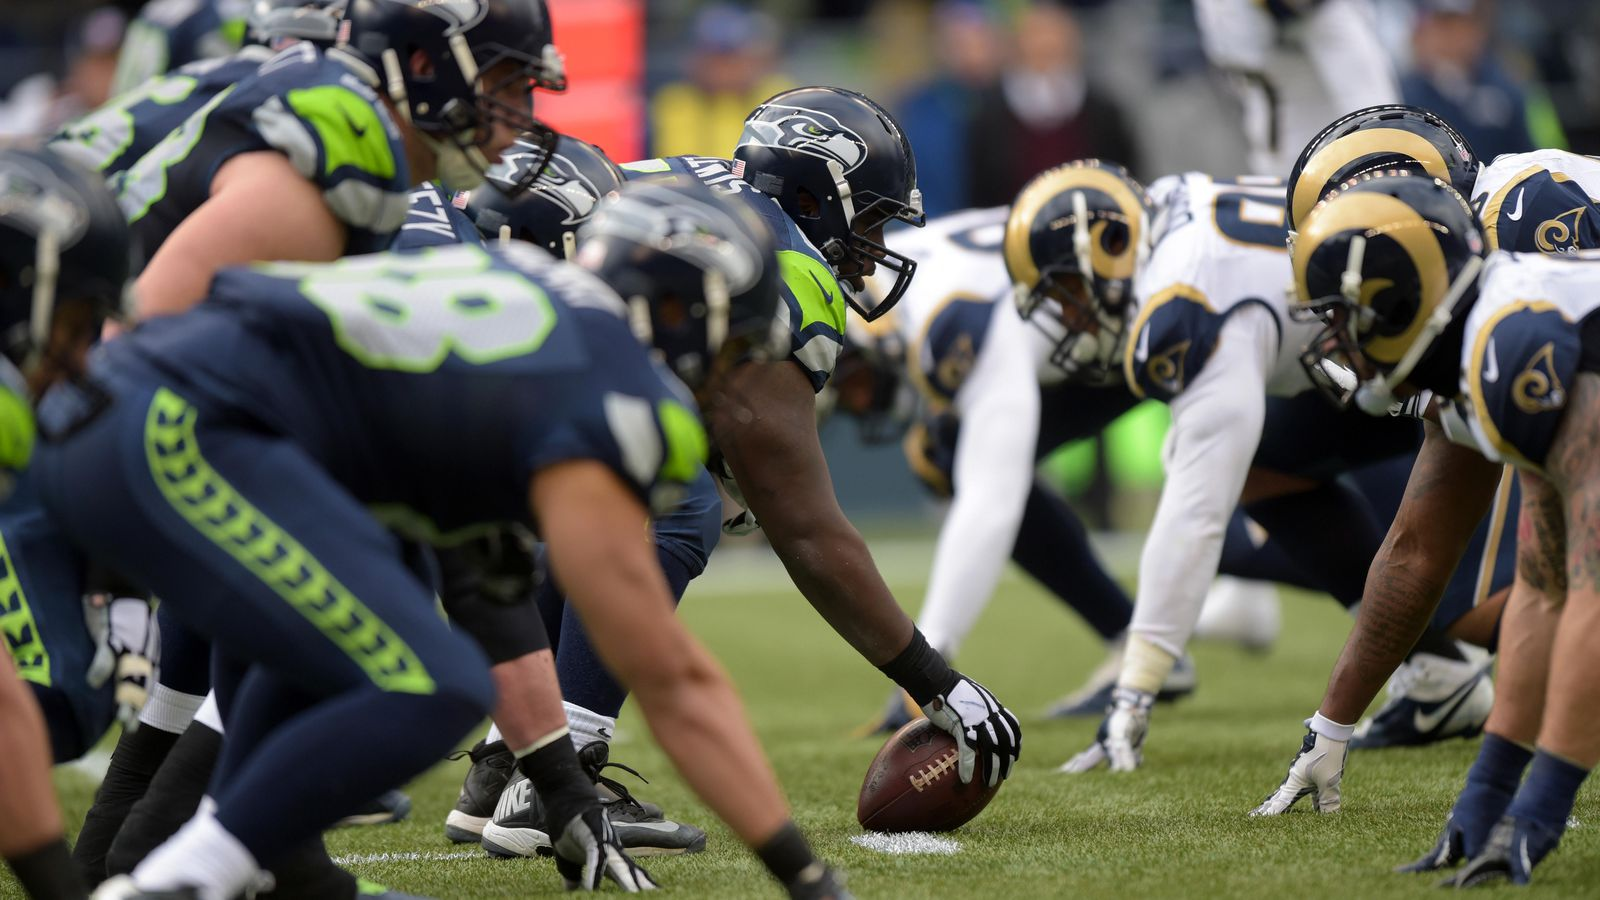 Seahawks rams betting predictions walter bettinger compensation for delayed